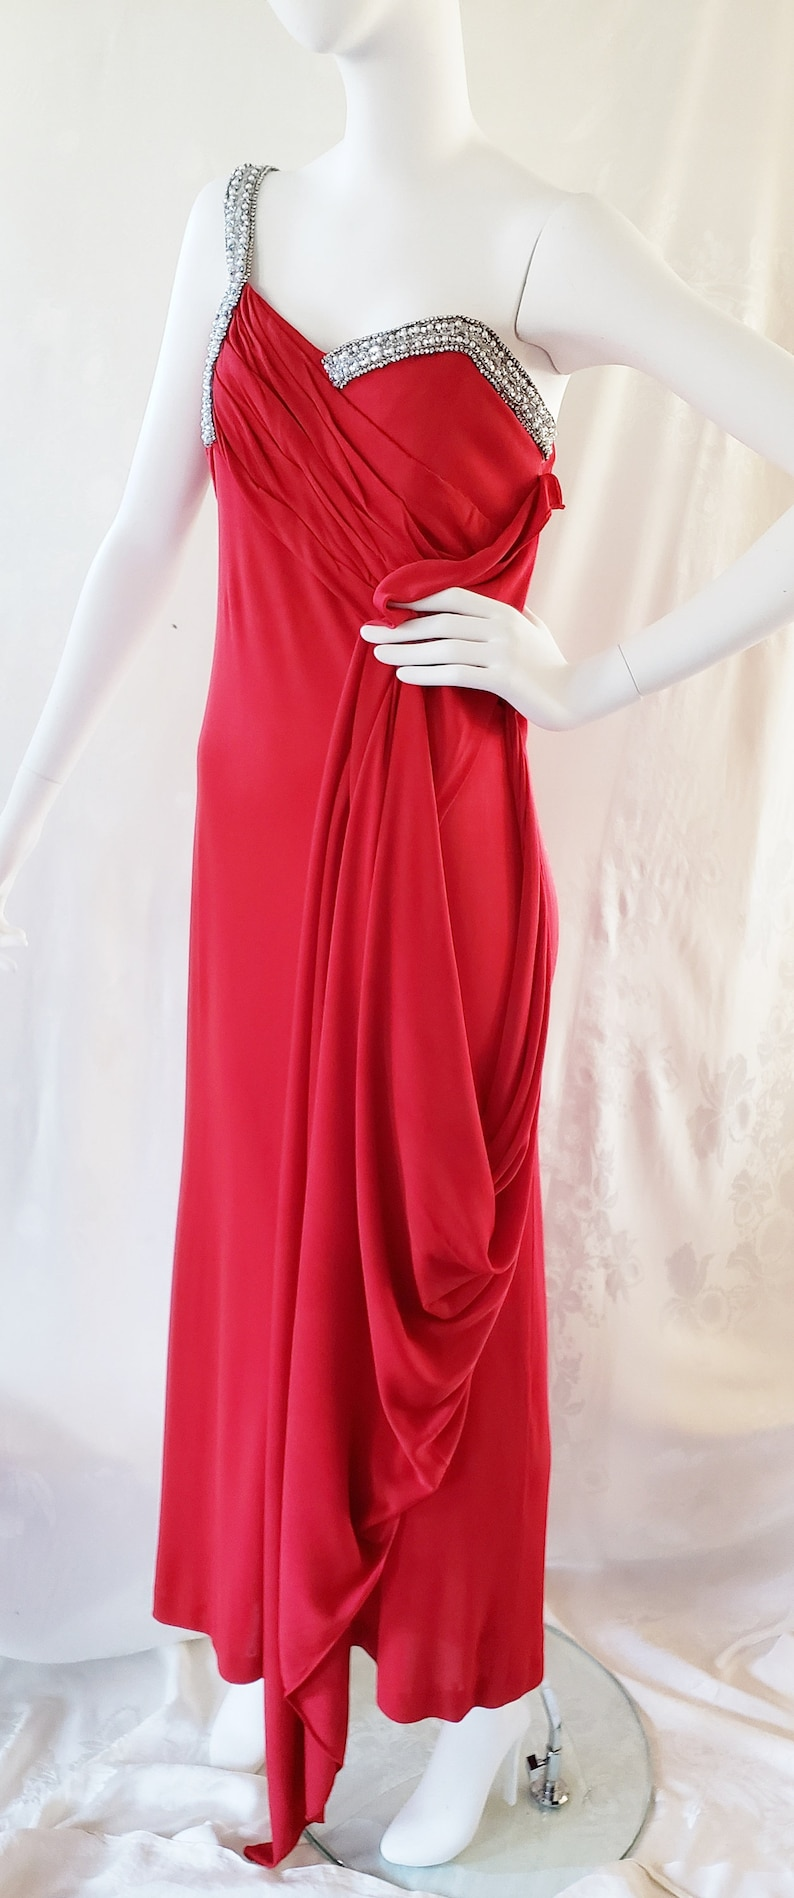 Vintage Evening Dresses and Formal Evening Gowns GLITZ n GLAMOUR of Hollywood in a RAVISHING Red Dress 1960s SophisticatedLaRue $128.00 AT vintagedancer.com